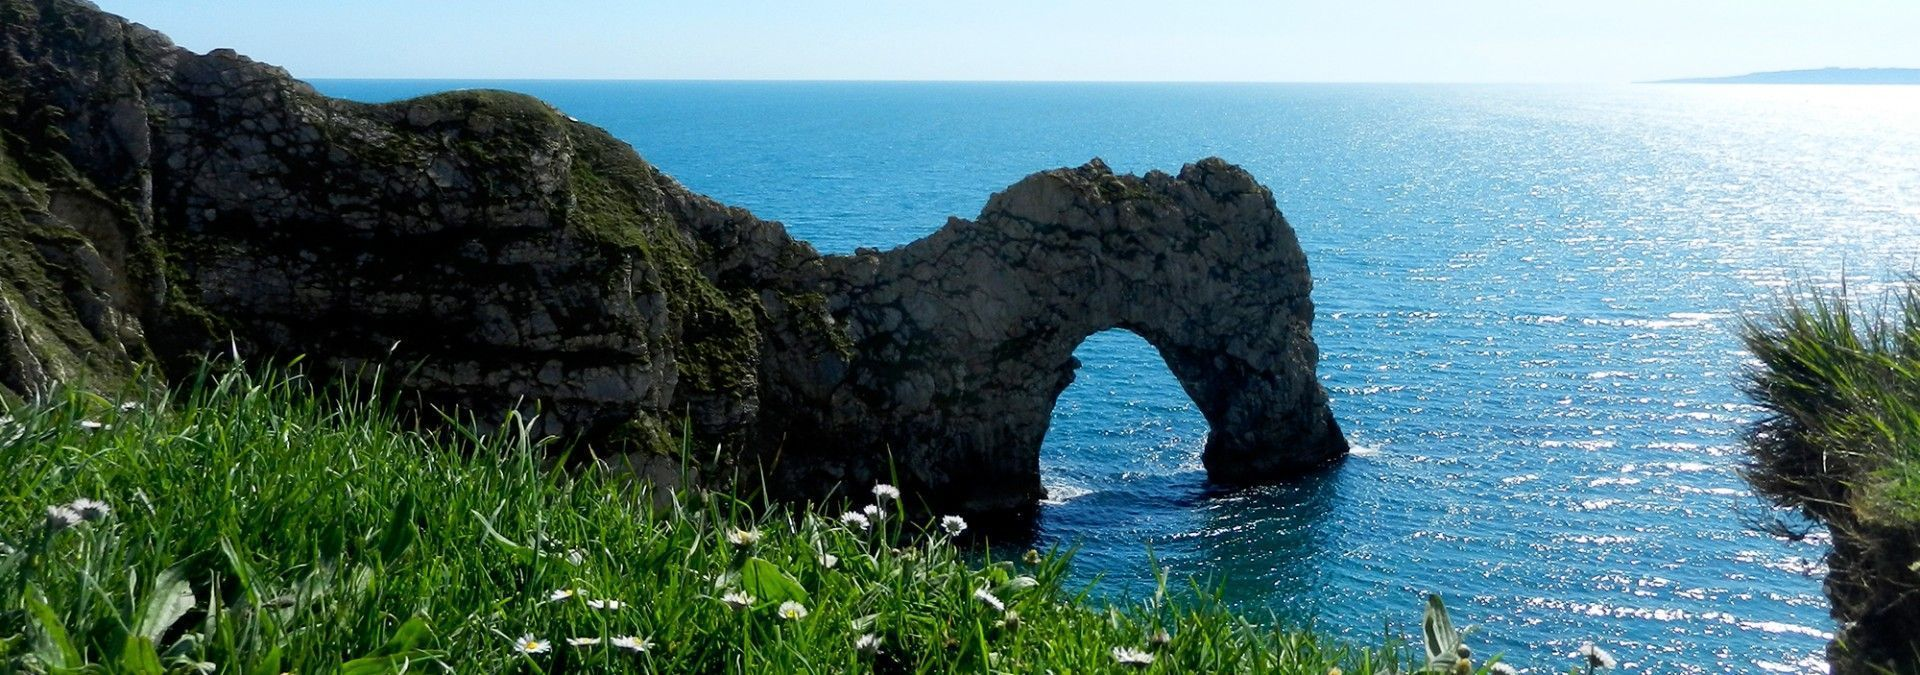 Durdle_door_Jurassic_Coast.jpg